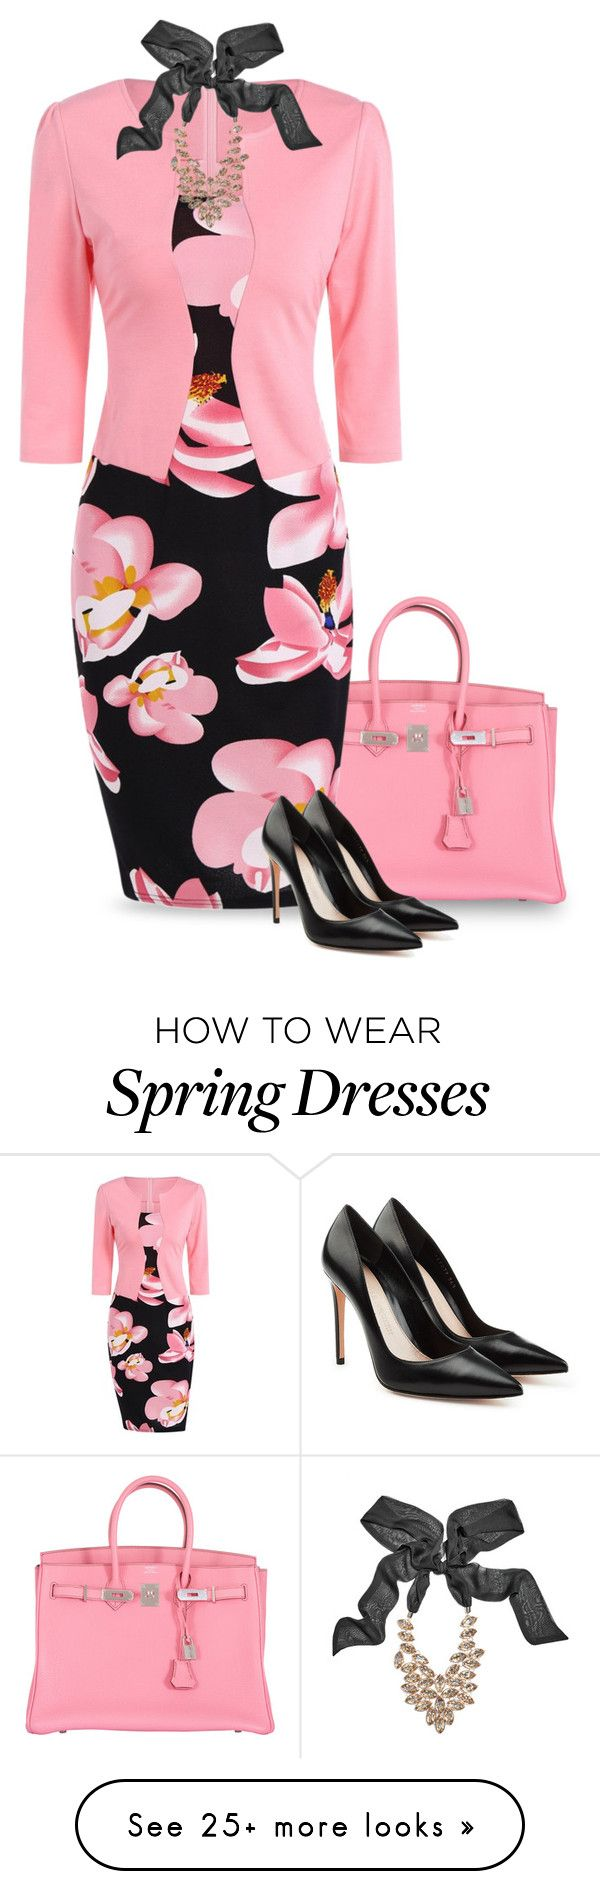 """Spring Fling"" by mk-style on Polyvore featuring Hermès, Trilogy, GUESS by Marciano and Alexander McQueen"